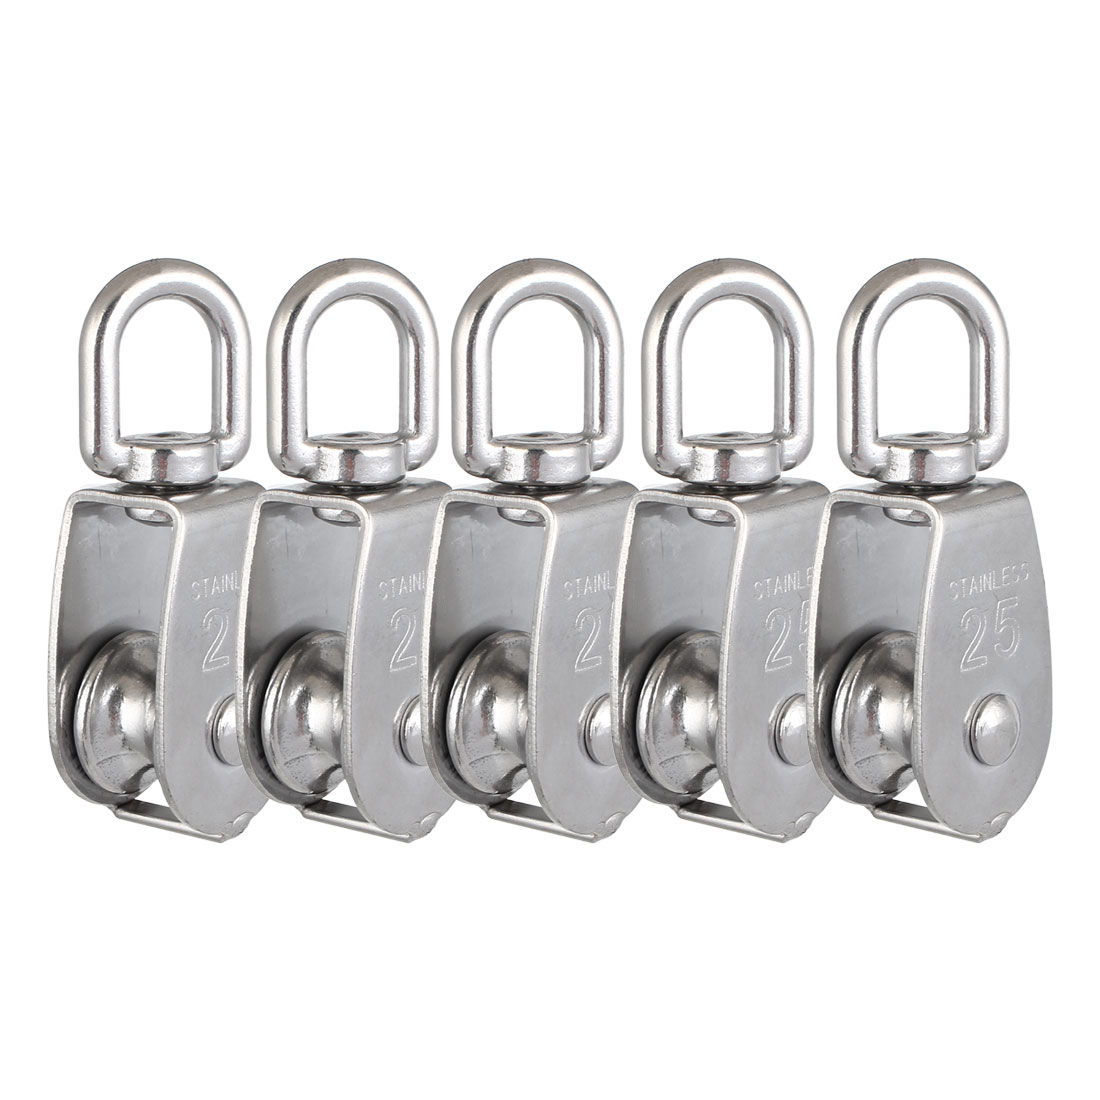 M25 304 Stainless Steel Single Wheel Swivel Snatch Pulley Block 5 Pcs